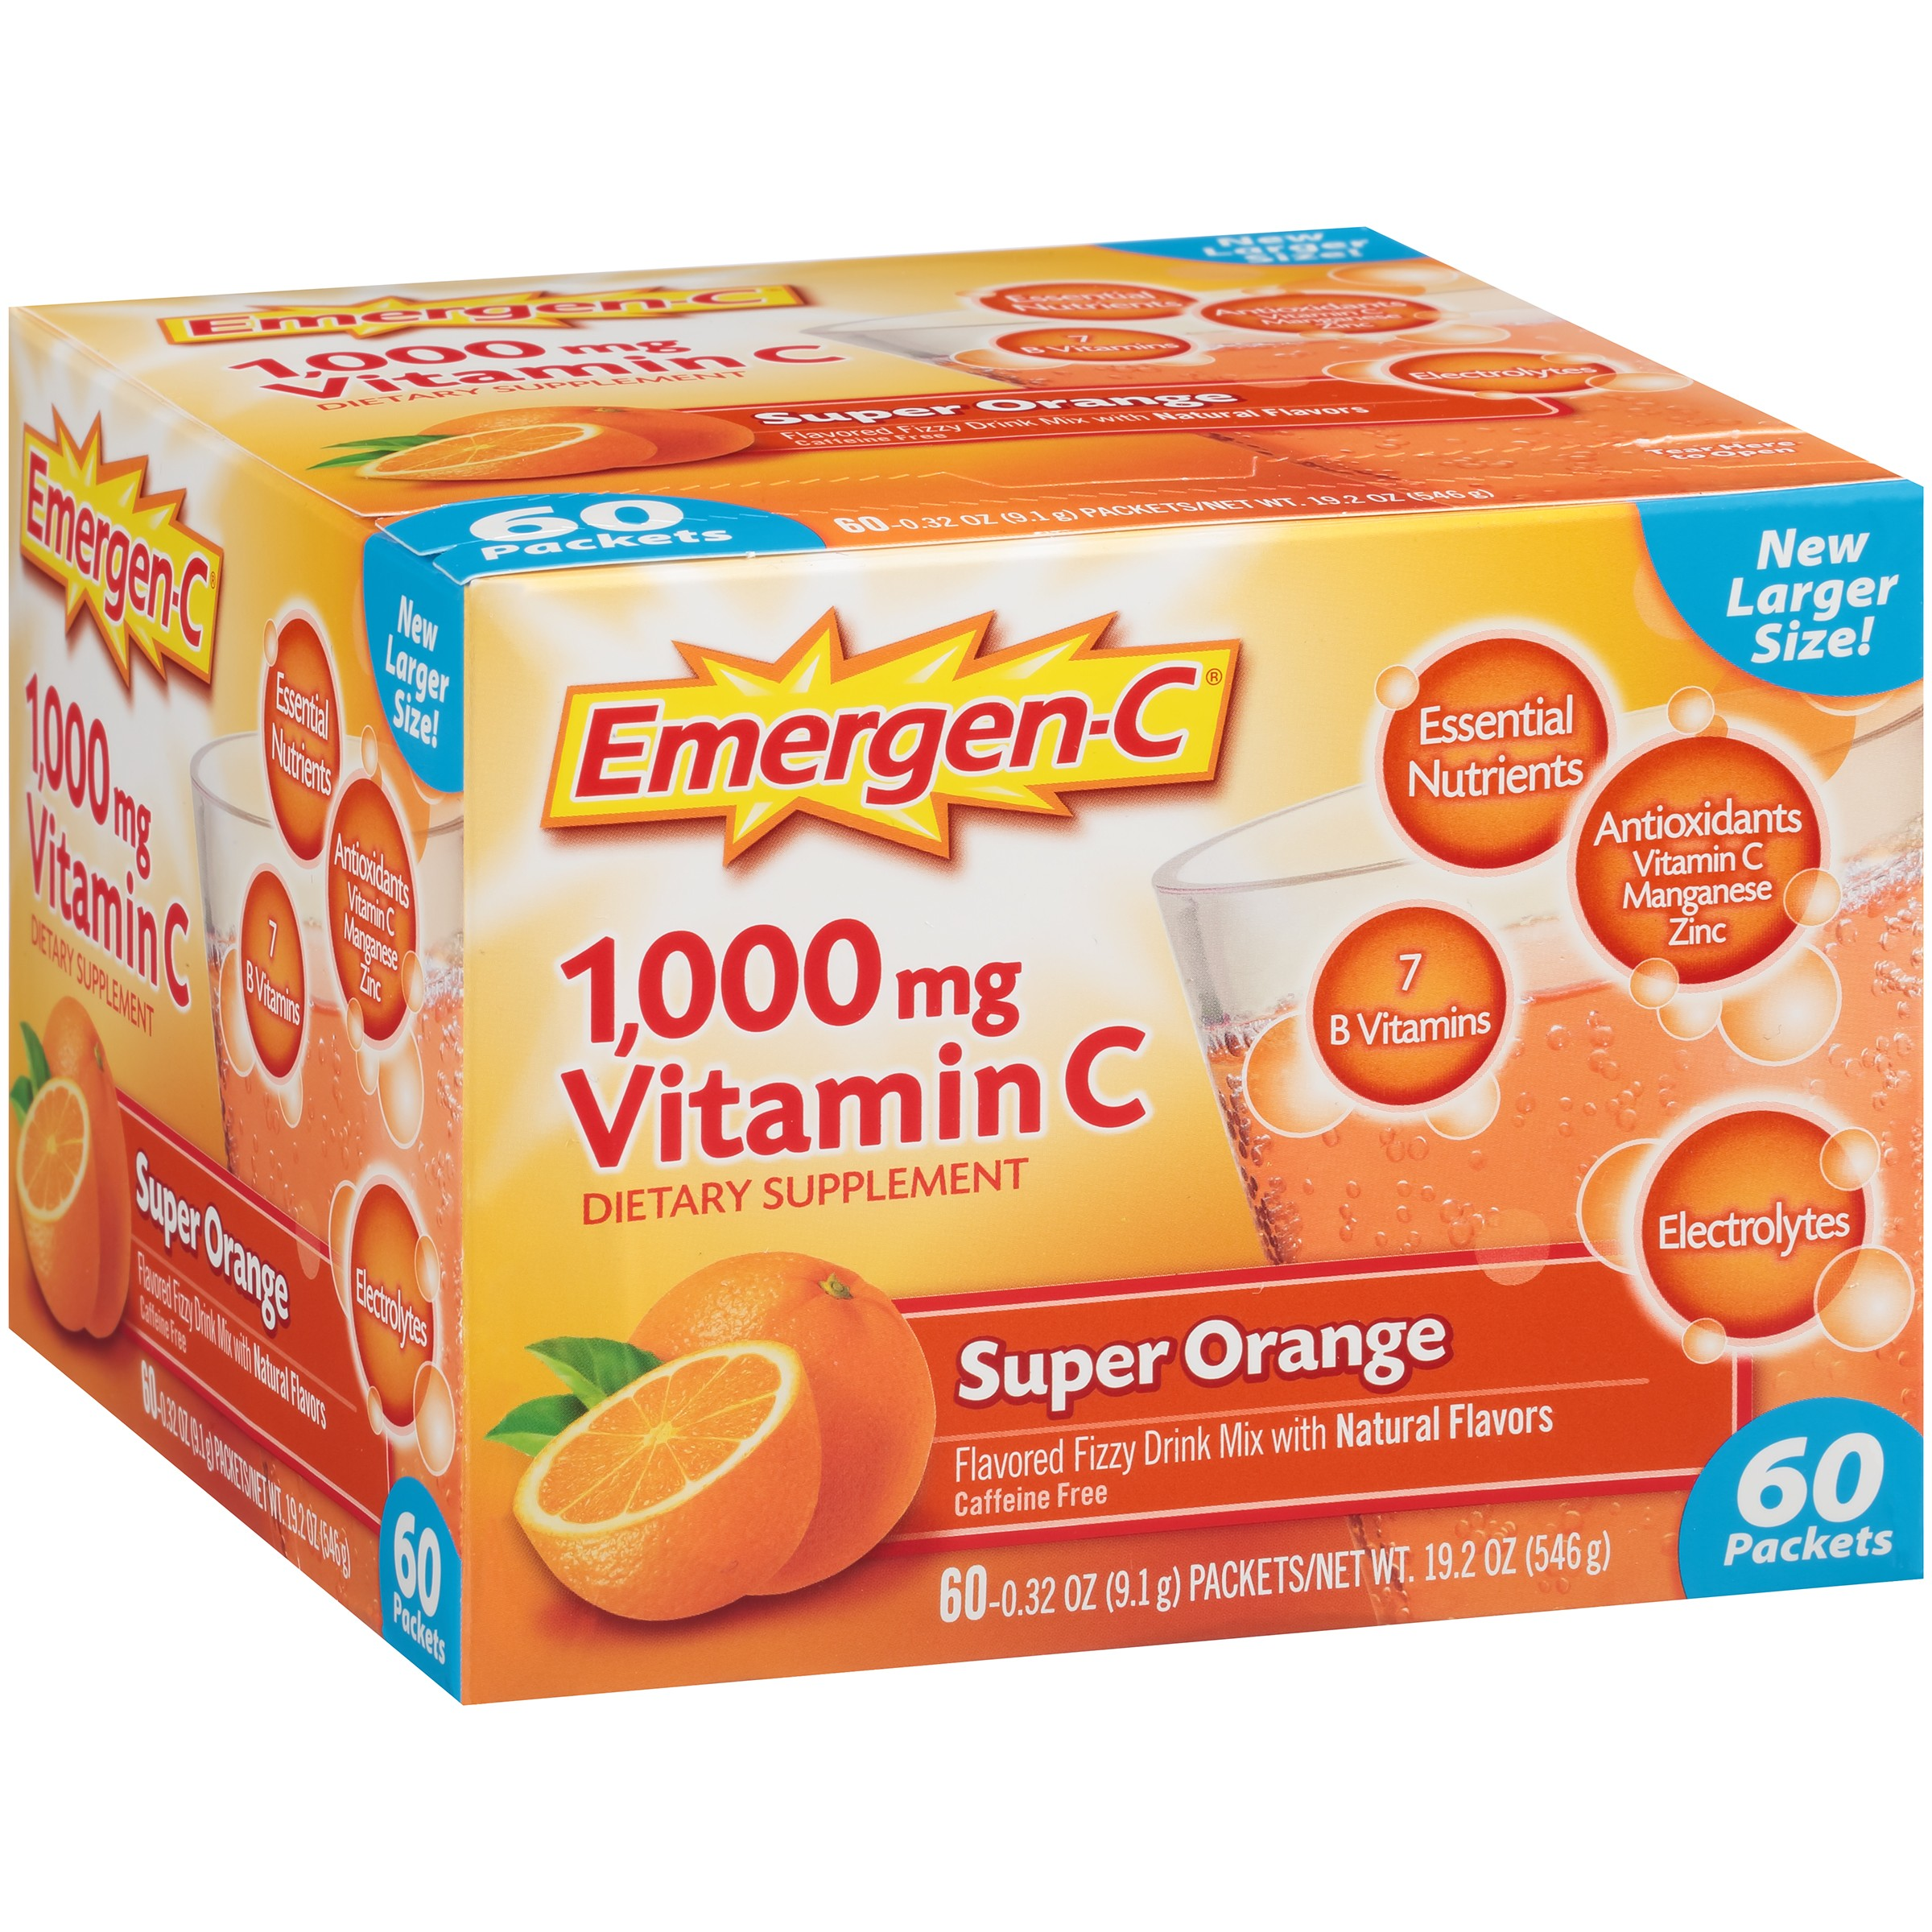 Emergen-C (60 Count, Super Orange Flavor) Dietary Supplement Fizzy Drink Mix With 1000mg Vitamin C, 0.32 Ounce Packets, Caffeine Free